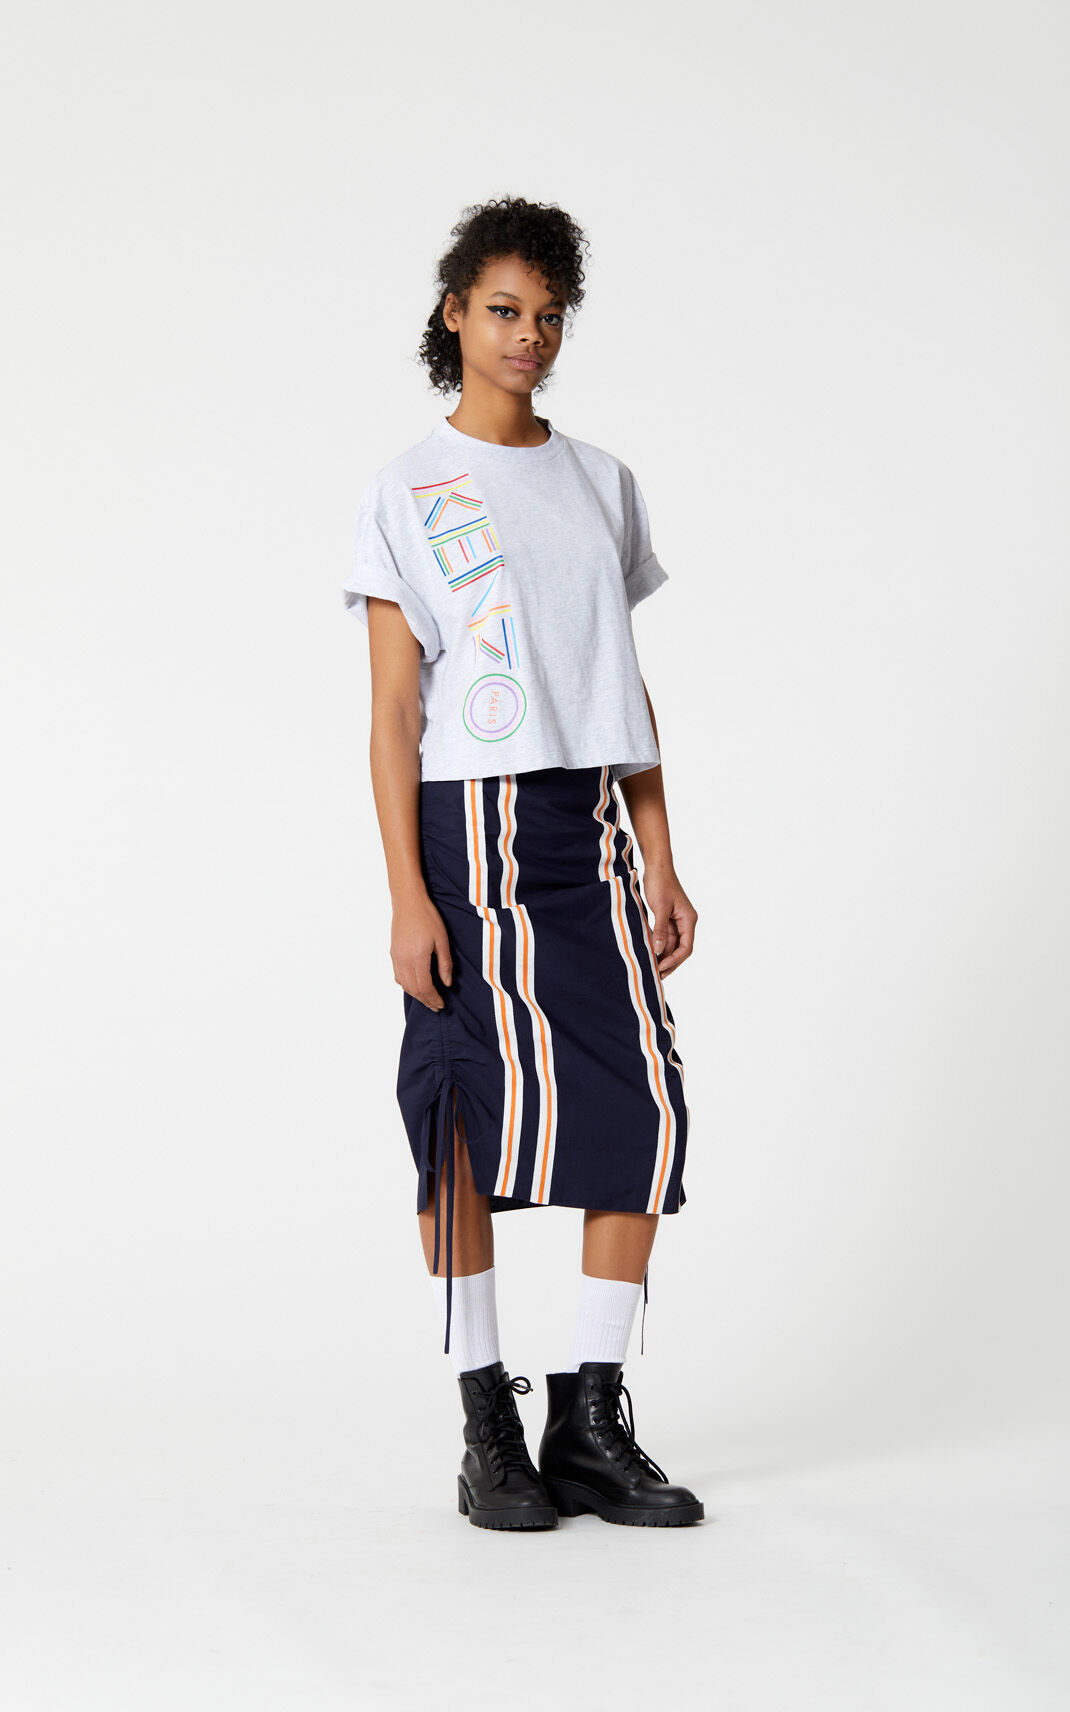 PALE GREY 'High Summer Capsule Collection' boxy t-shirt with Kenzo logo for women